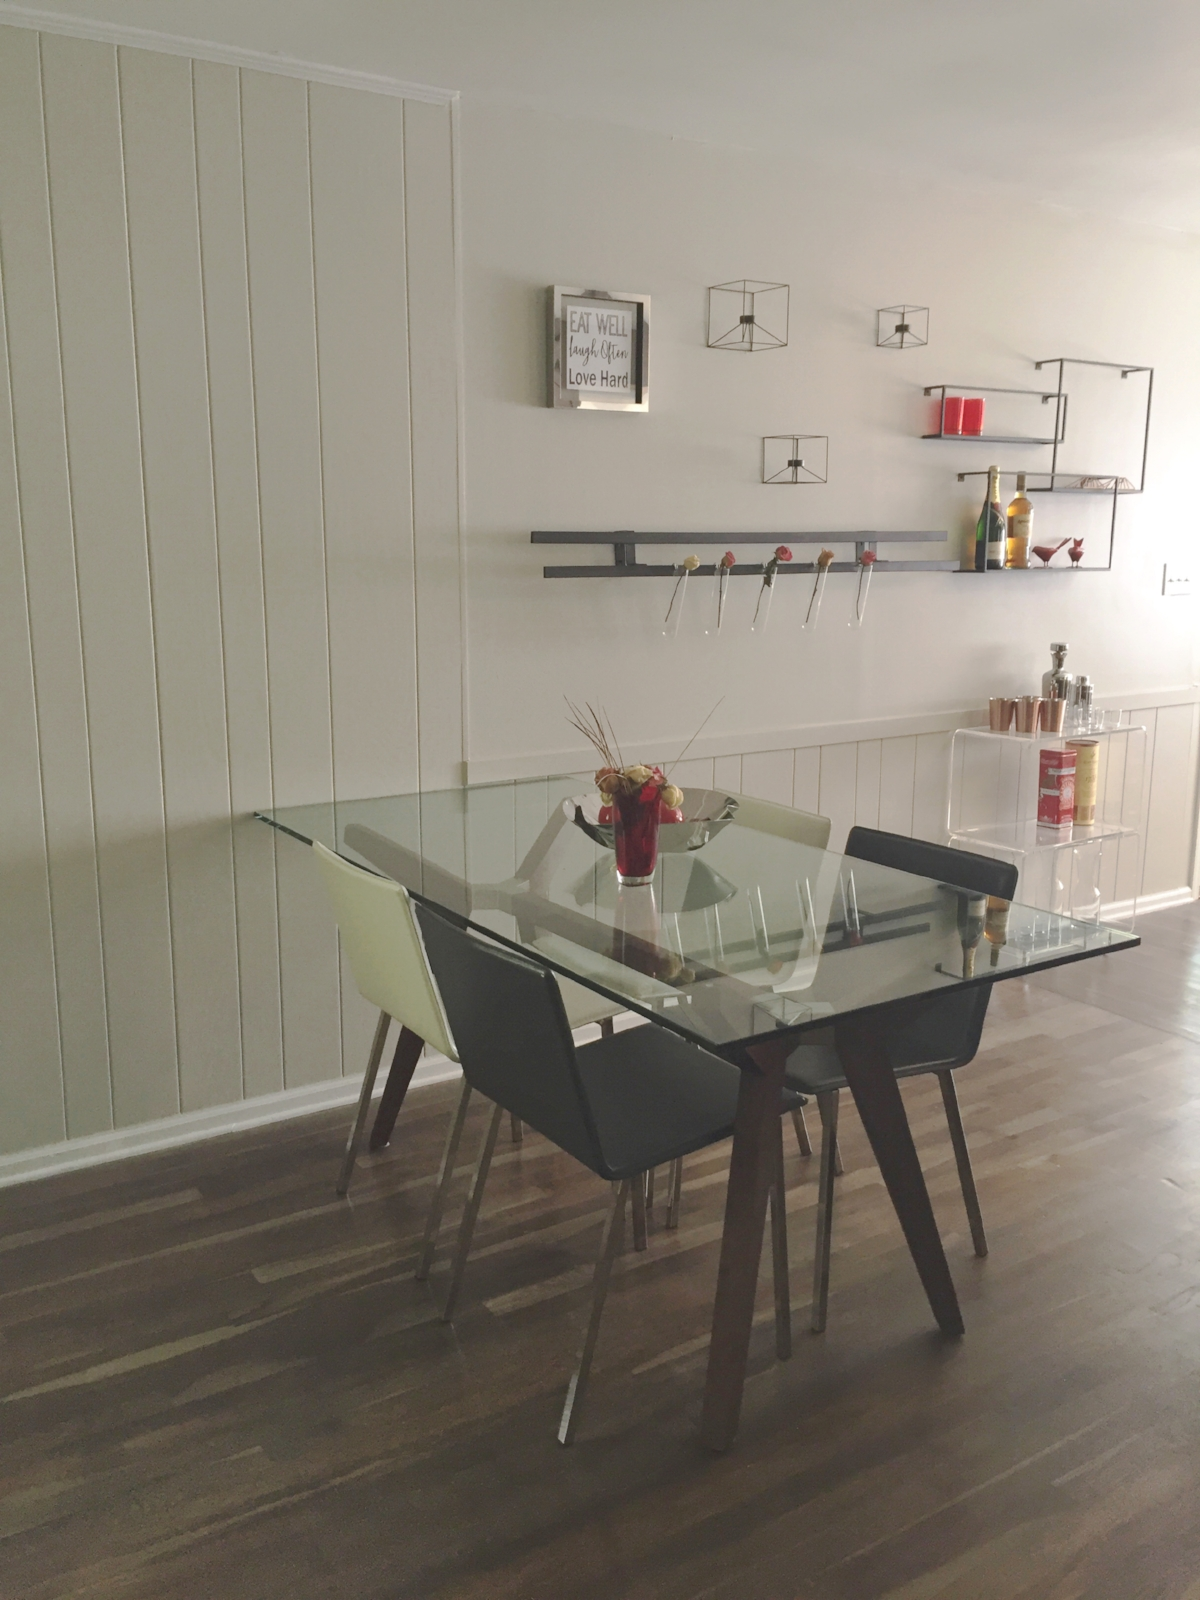 Entertain Me - Dining Space